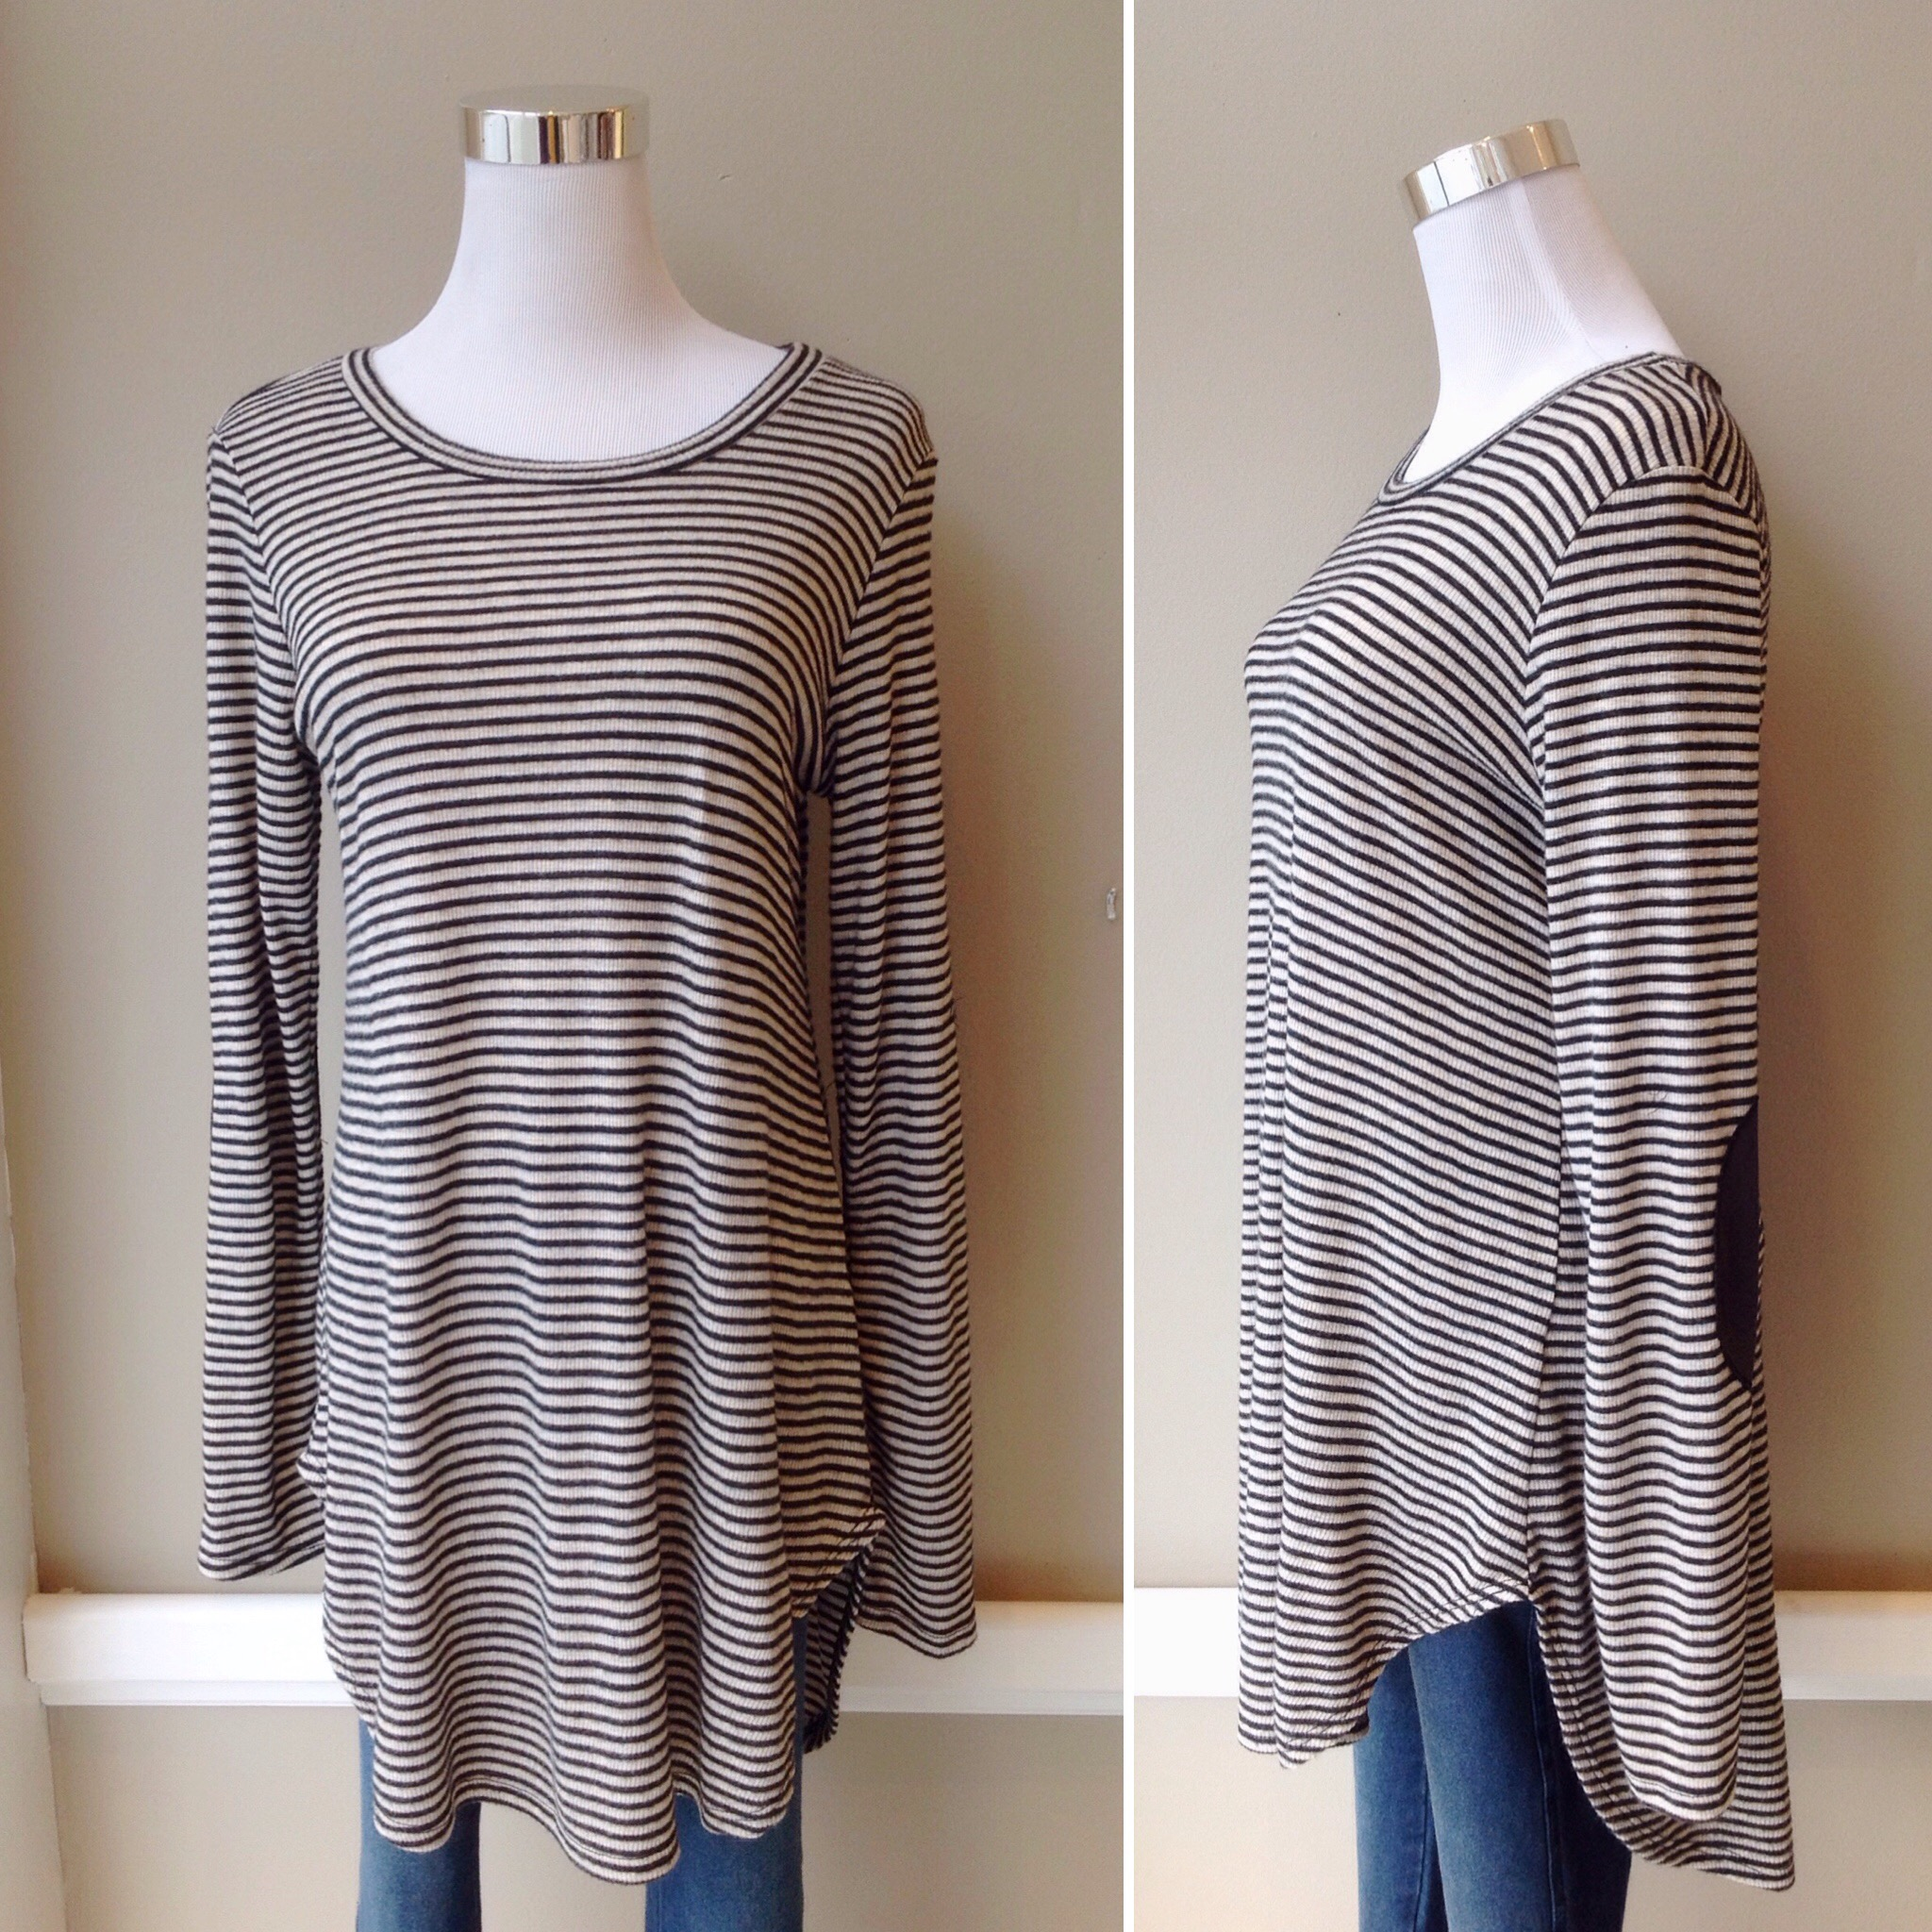 Brushed knit top with rounded hem and elbow patches in taupe/black stripe, $34